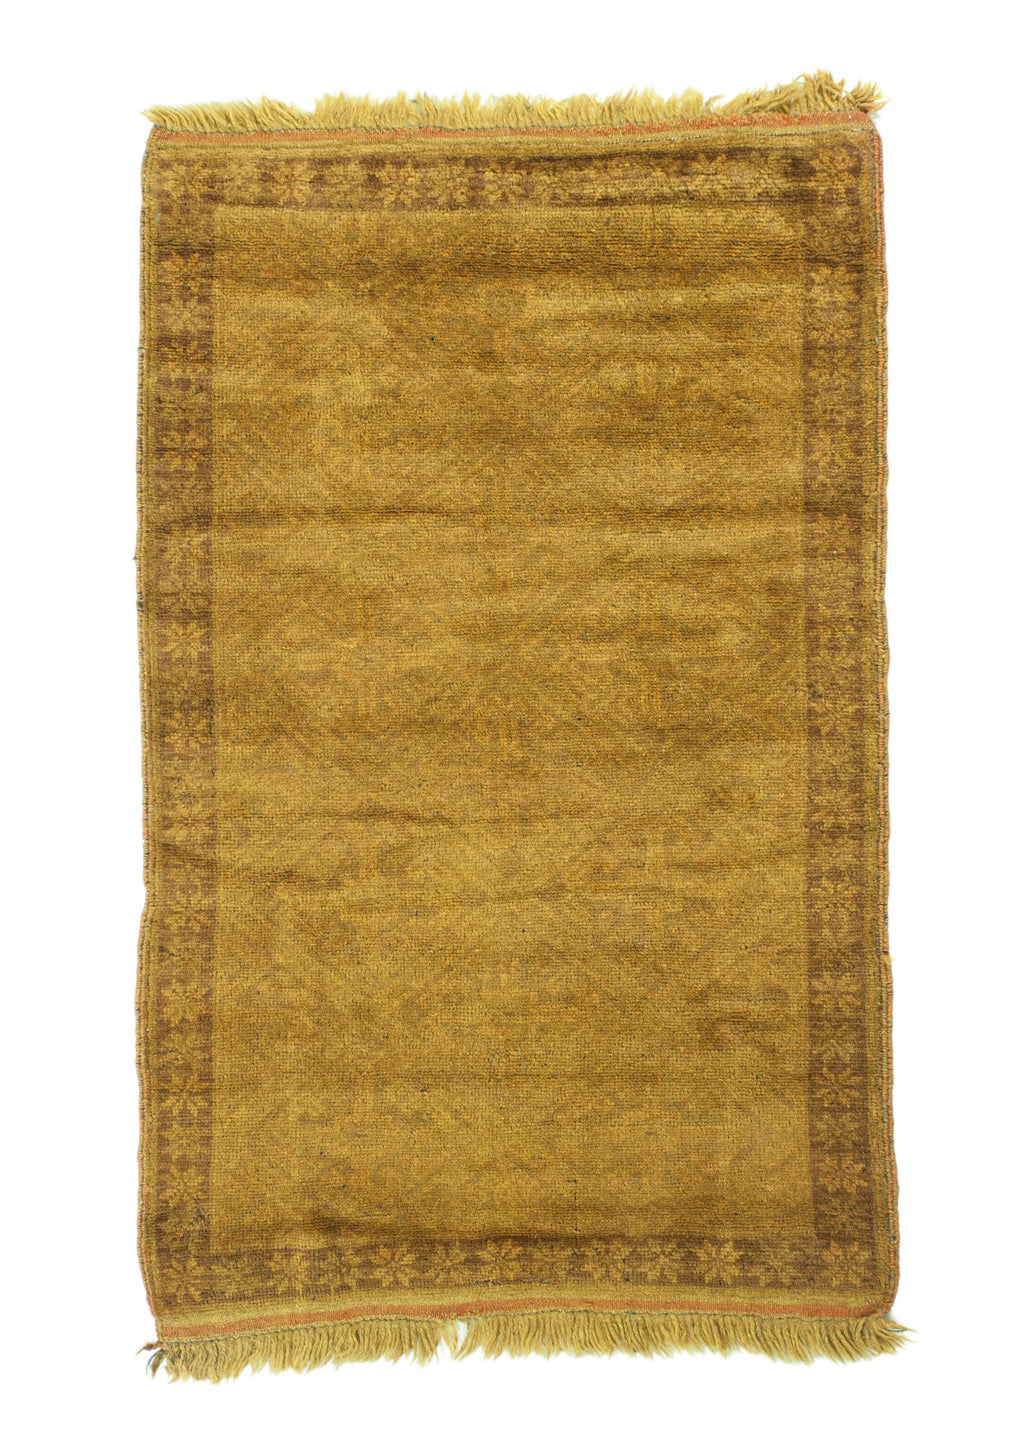 3x4 3x5 Overdyed Vintage Tribal Gold Chocolate Rug woh-2624